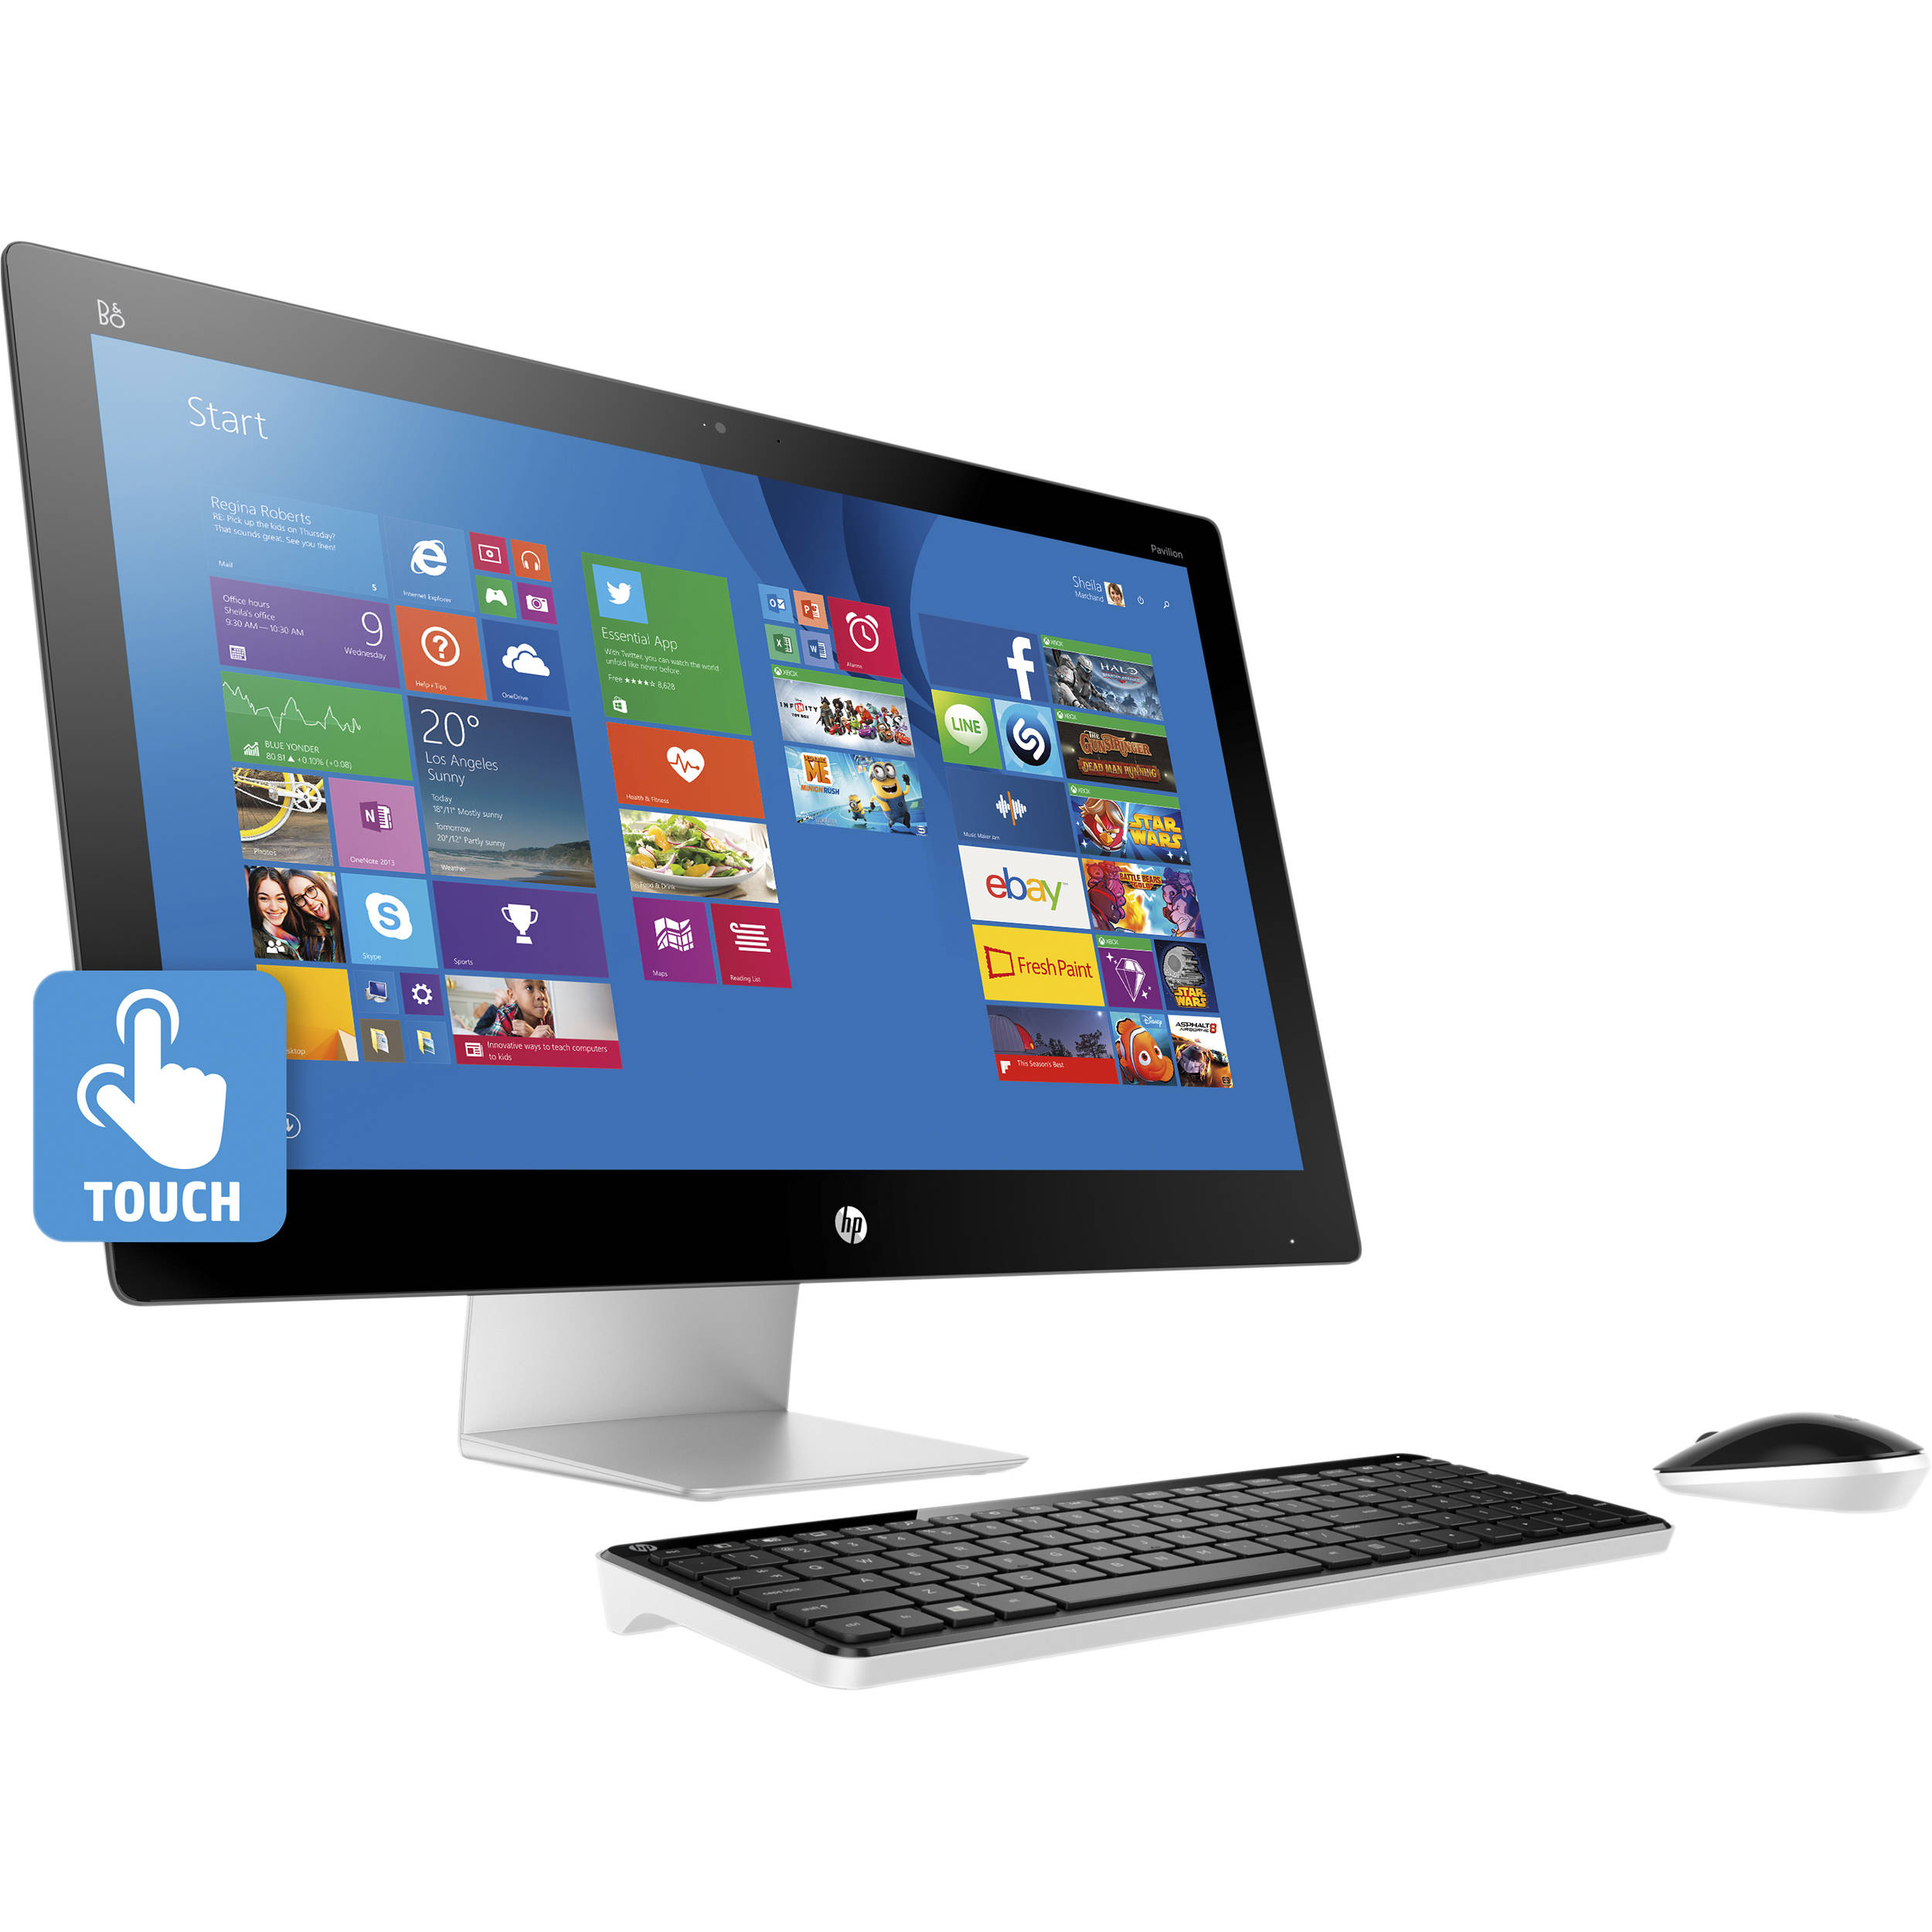 HP Pavilion all in one pc